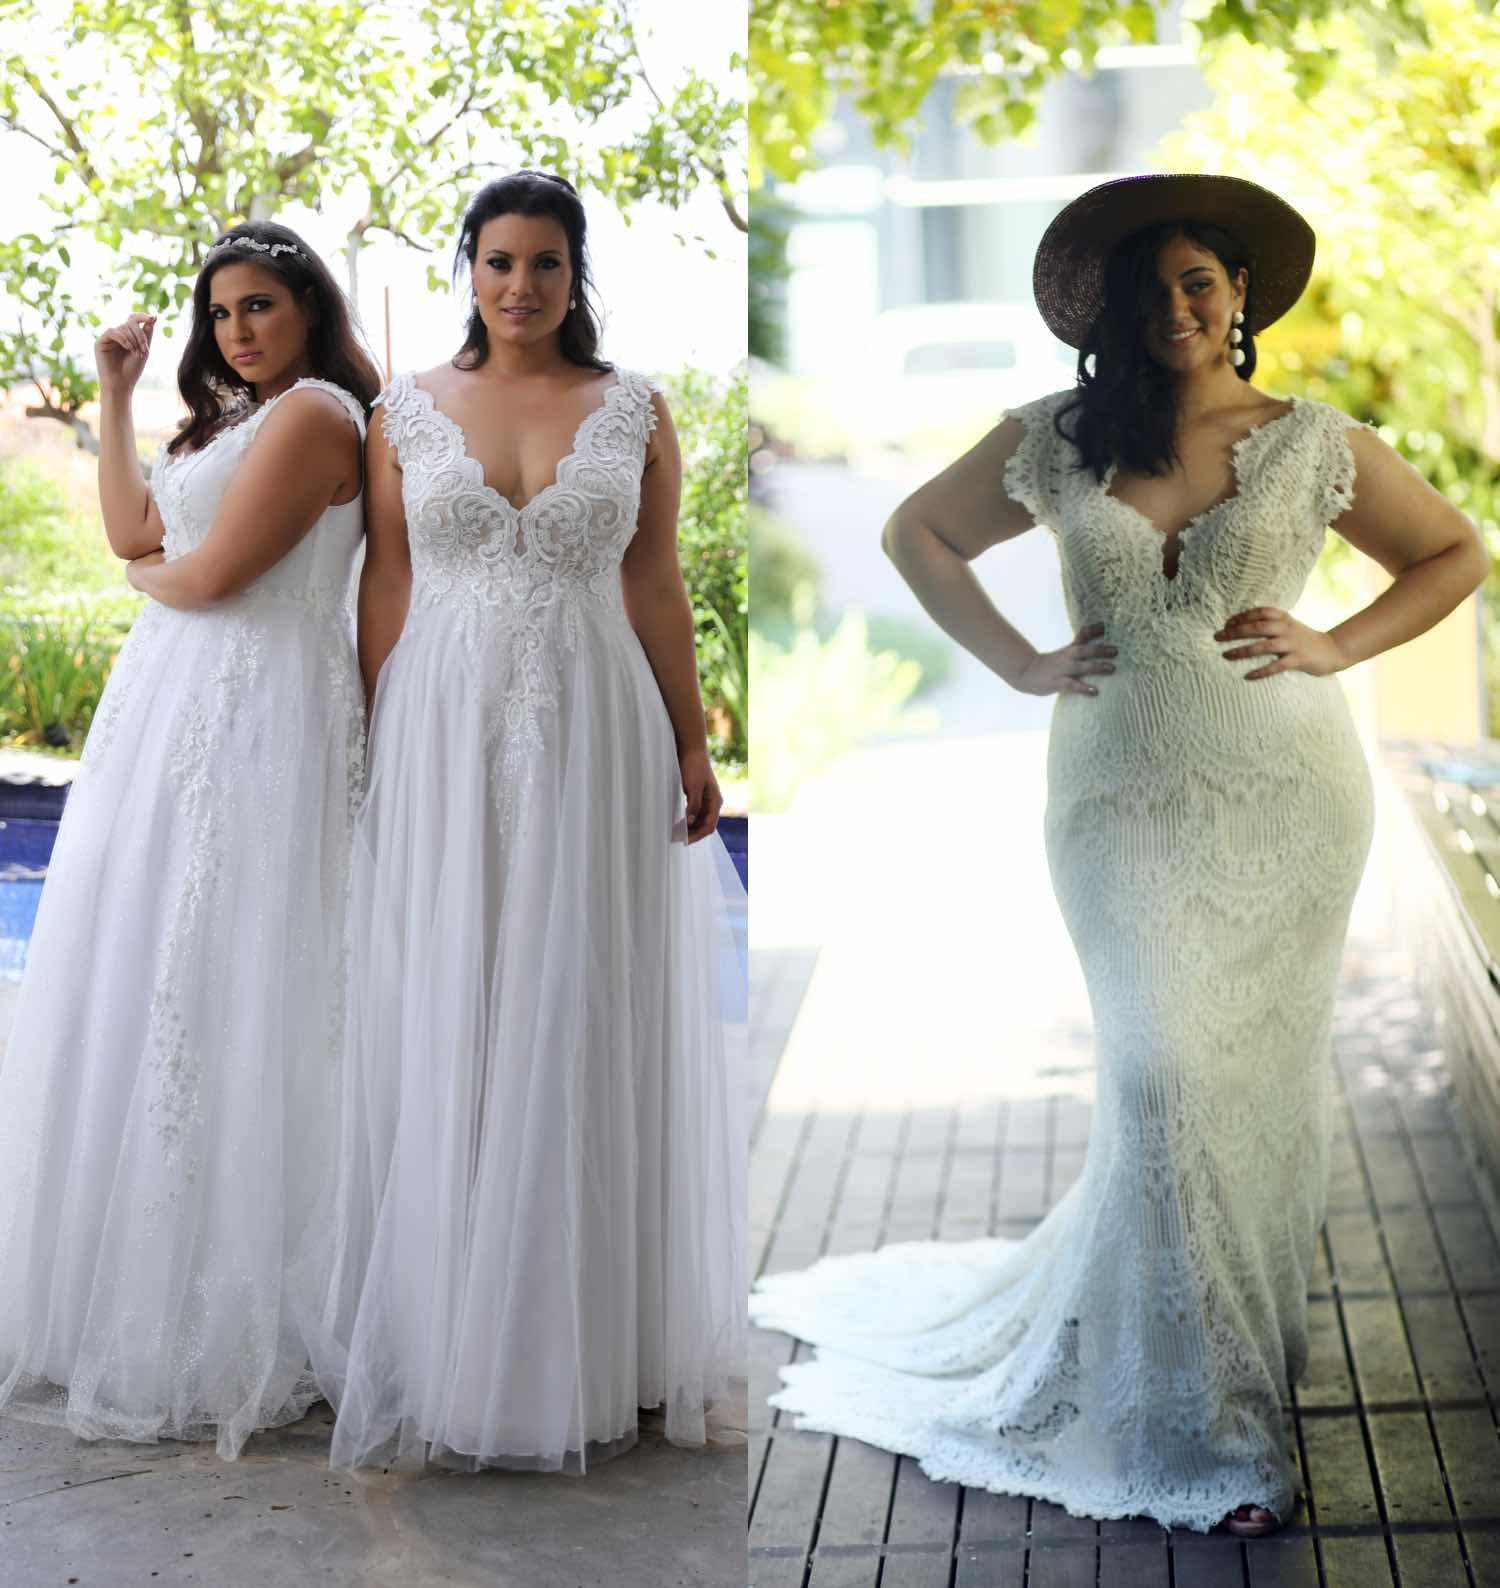 Della Curva Has The Best Selection Of Plus Size Wedding Dresses In Los Angeles California Wedding Dresses Plus Size Wedding Dresses [ 1588 x 1500 Pixel ]